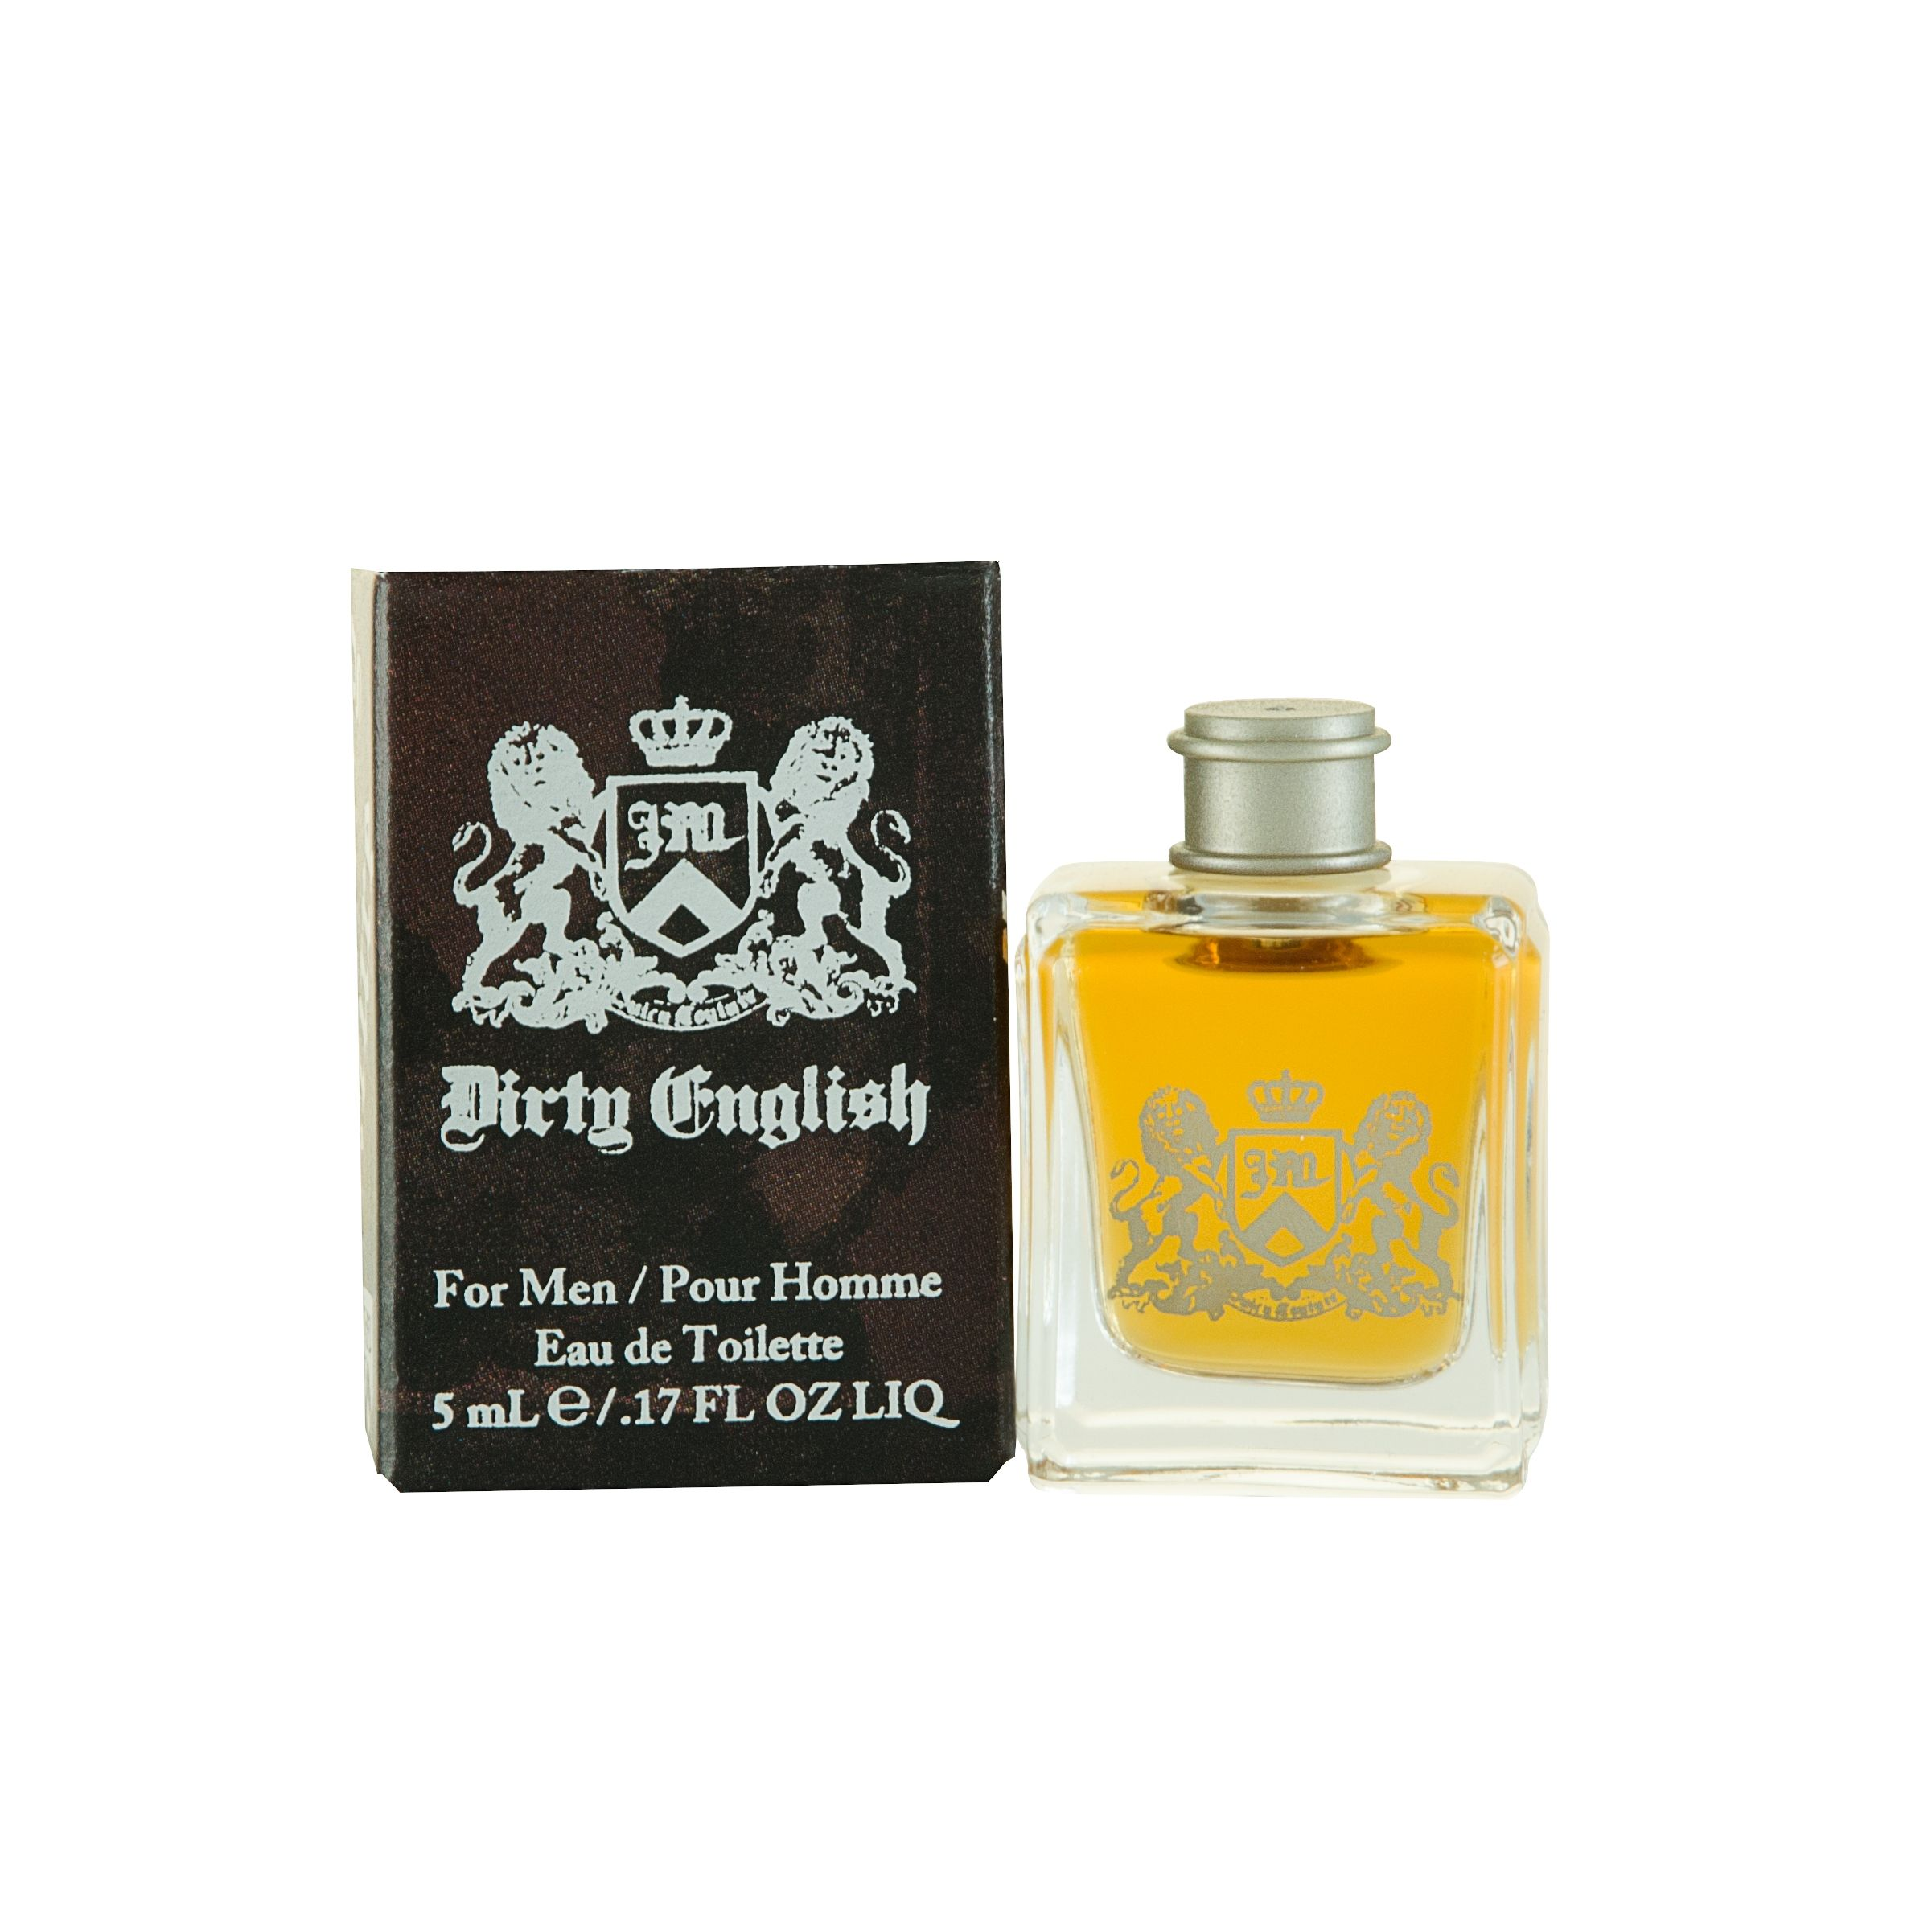 Juicy Couture Dirty English Eau de Toilette 5 ml